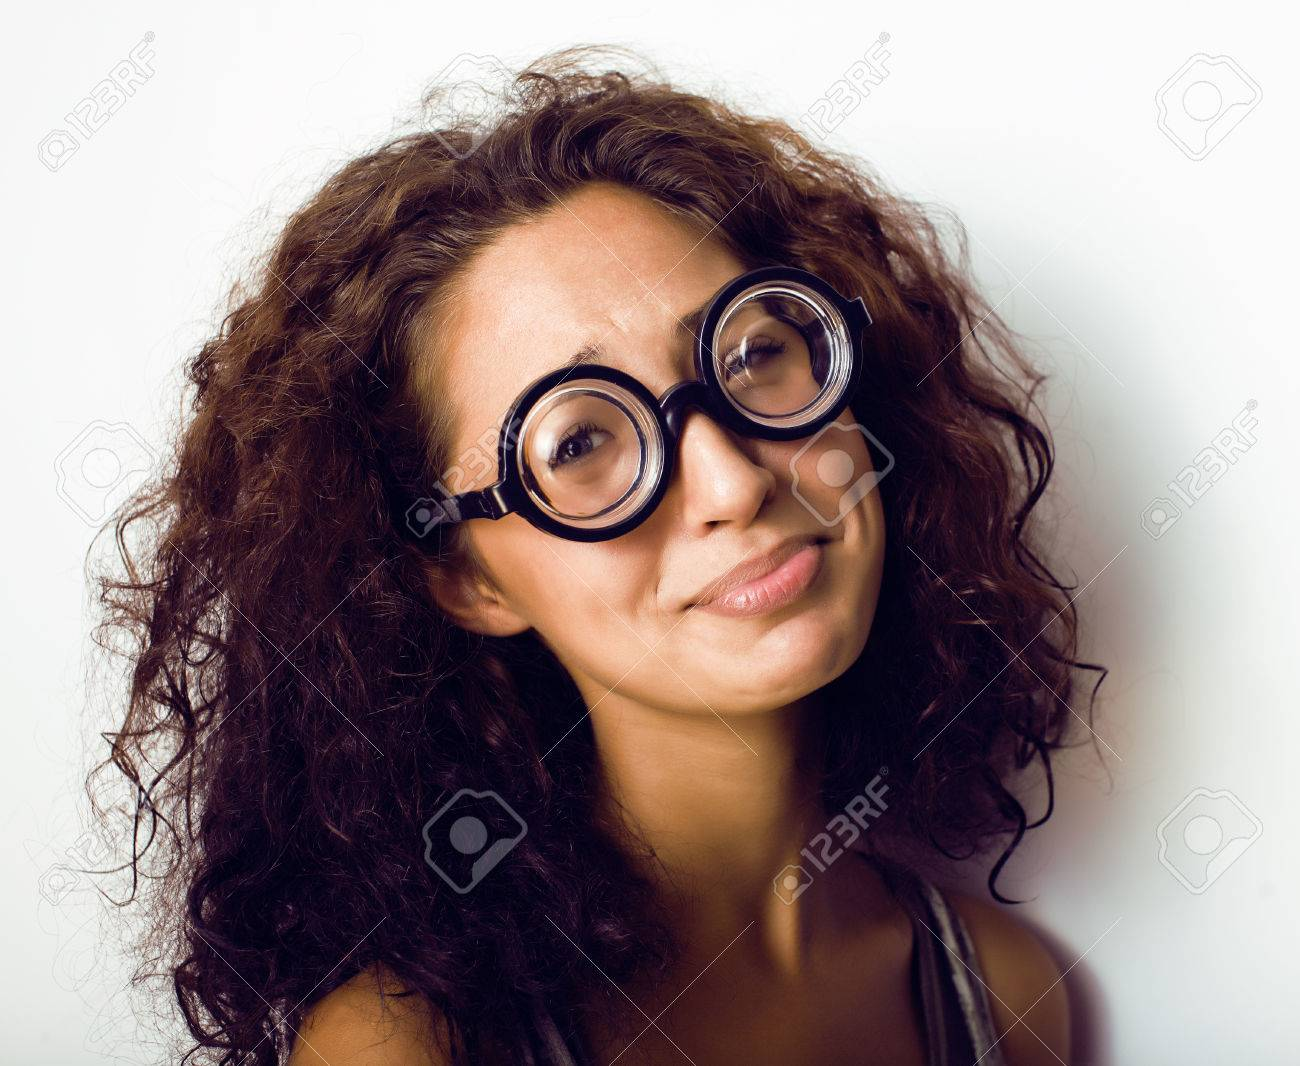 Bookworm Cute Young Woman In Glasses Curly Hair Teenage Girl